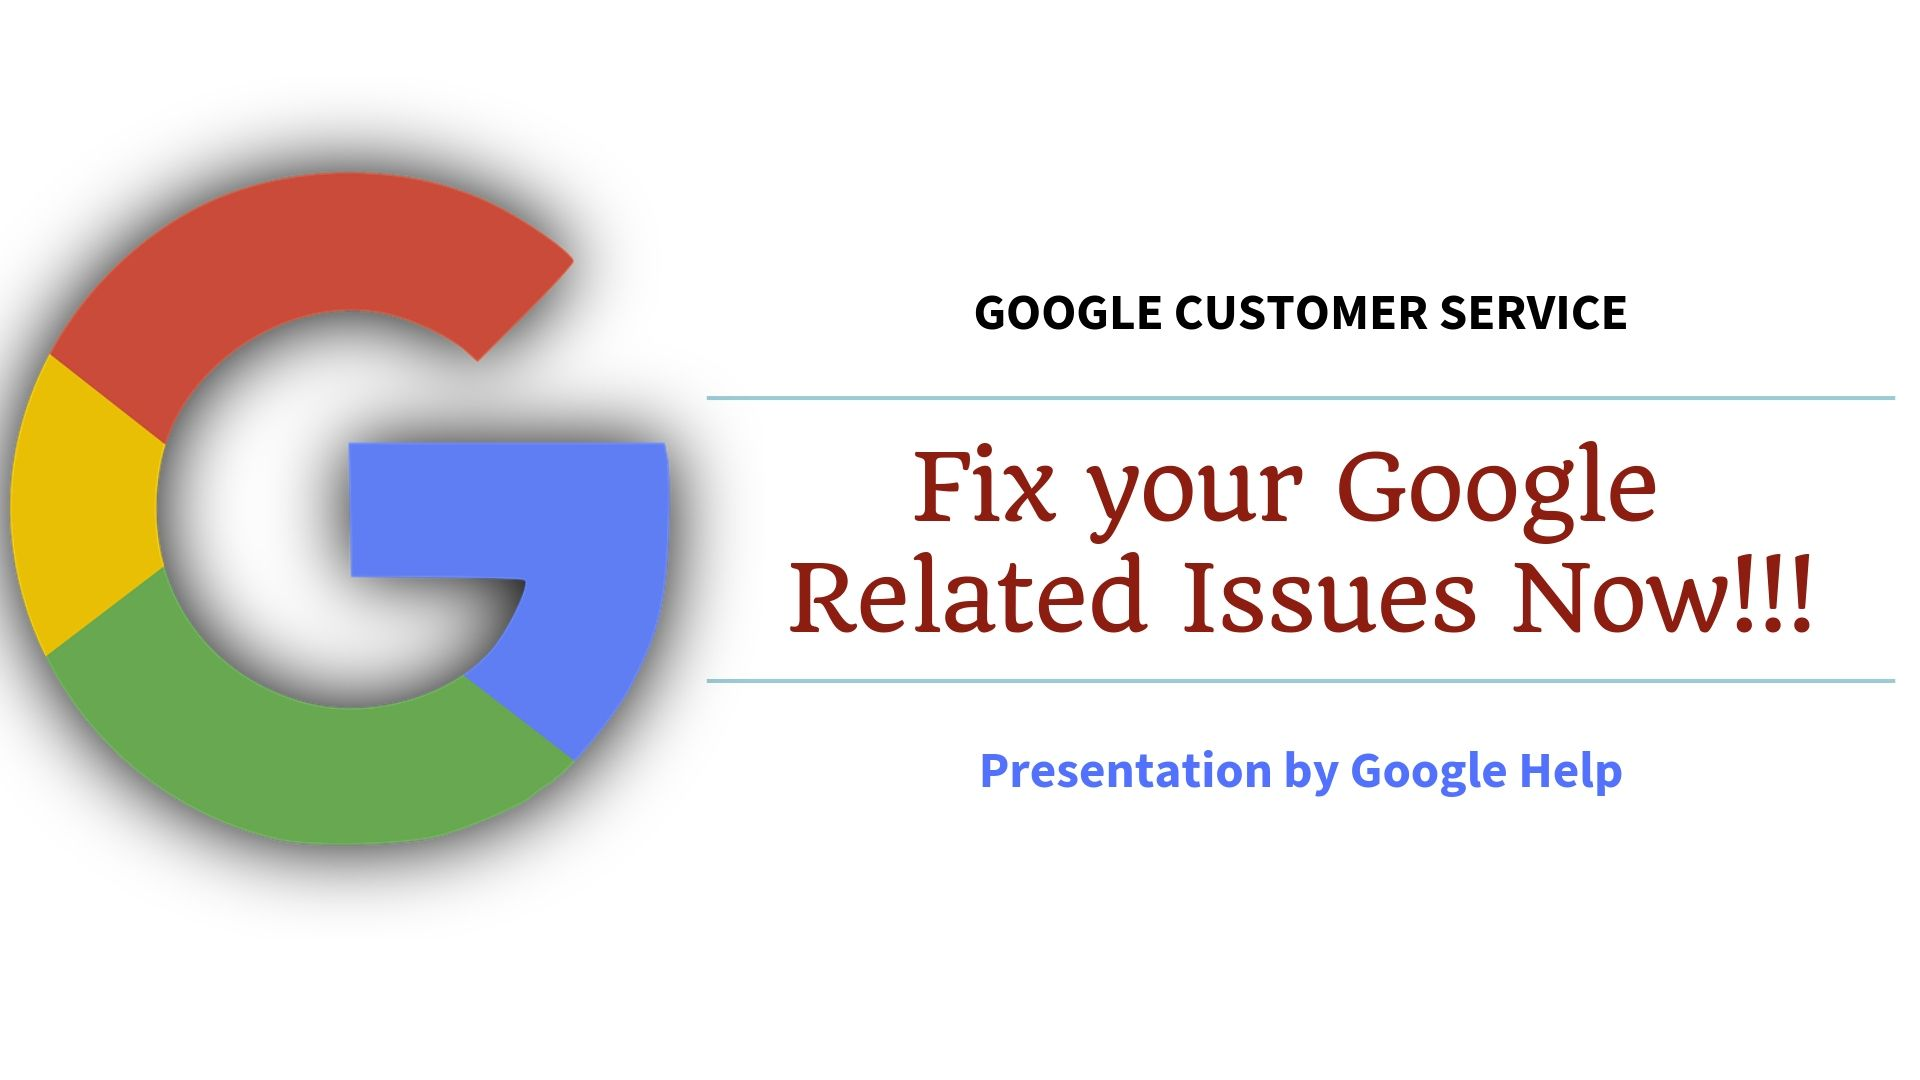 Get Assistance By Google Customer Service To Fix All Hassels With Related To Your Google Get Tips By Proffesional By Calling Go Customer Service Service Google